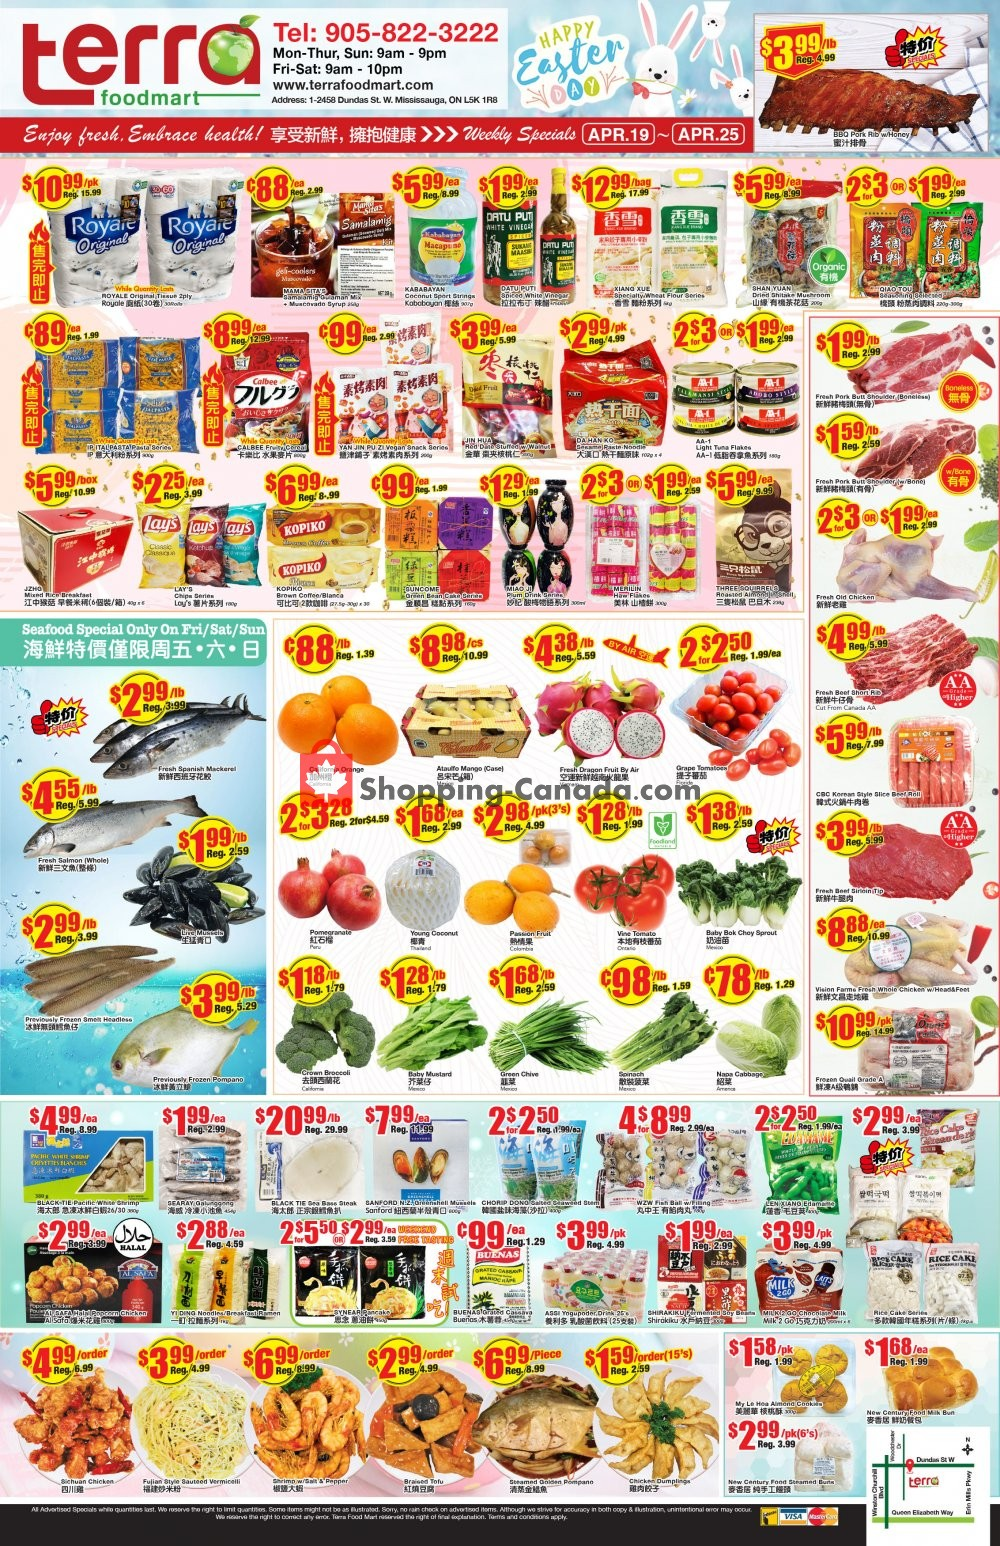 Flyer Terra Foodmart Canada - from Friday April 19, 2019 to Thursday April 25, 2019